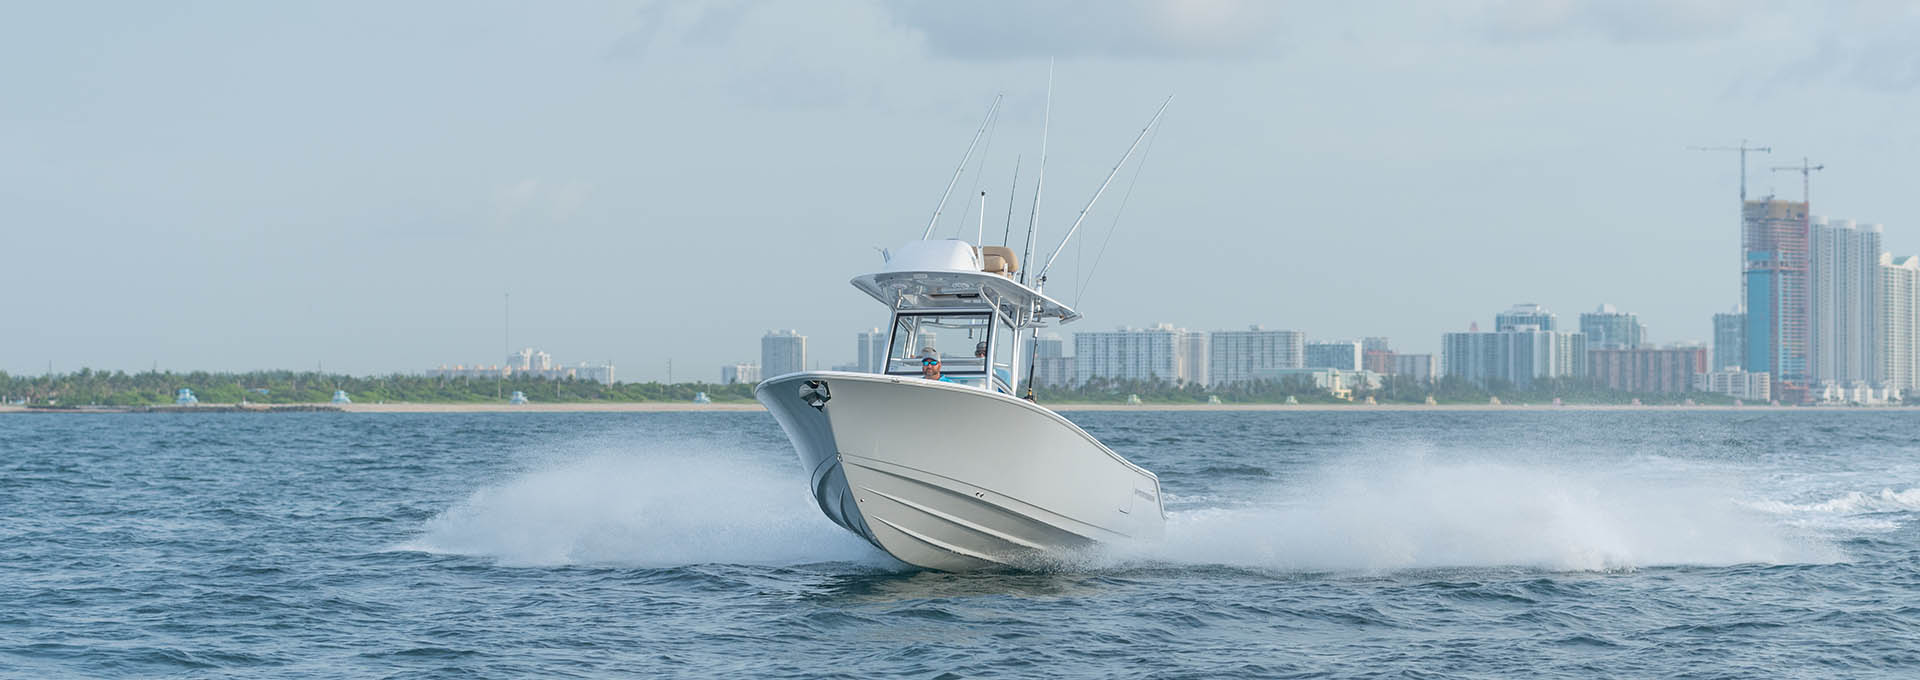 Slide show of images of the Open 252 Center Console. This is image number 2.